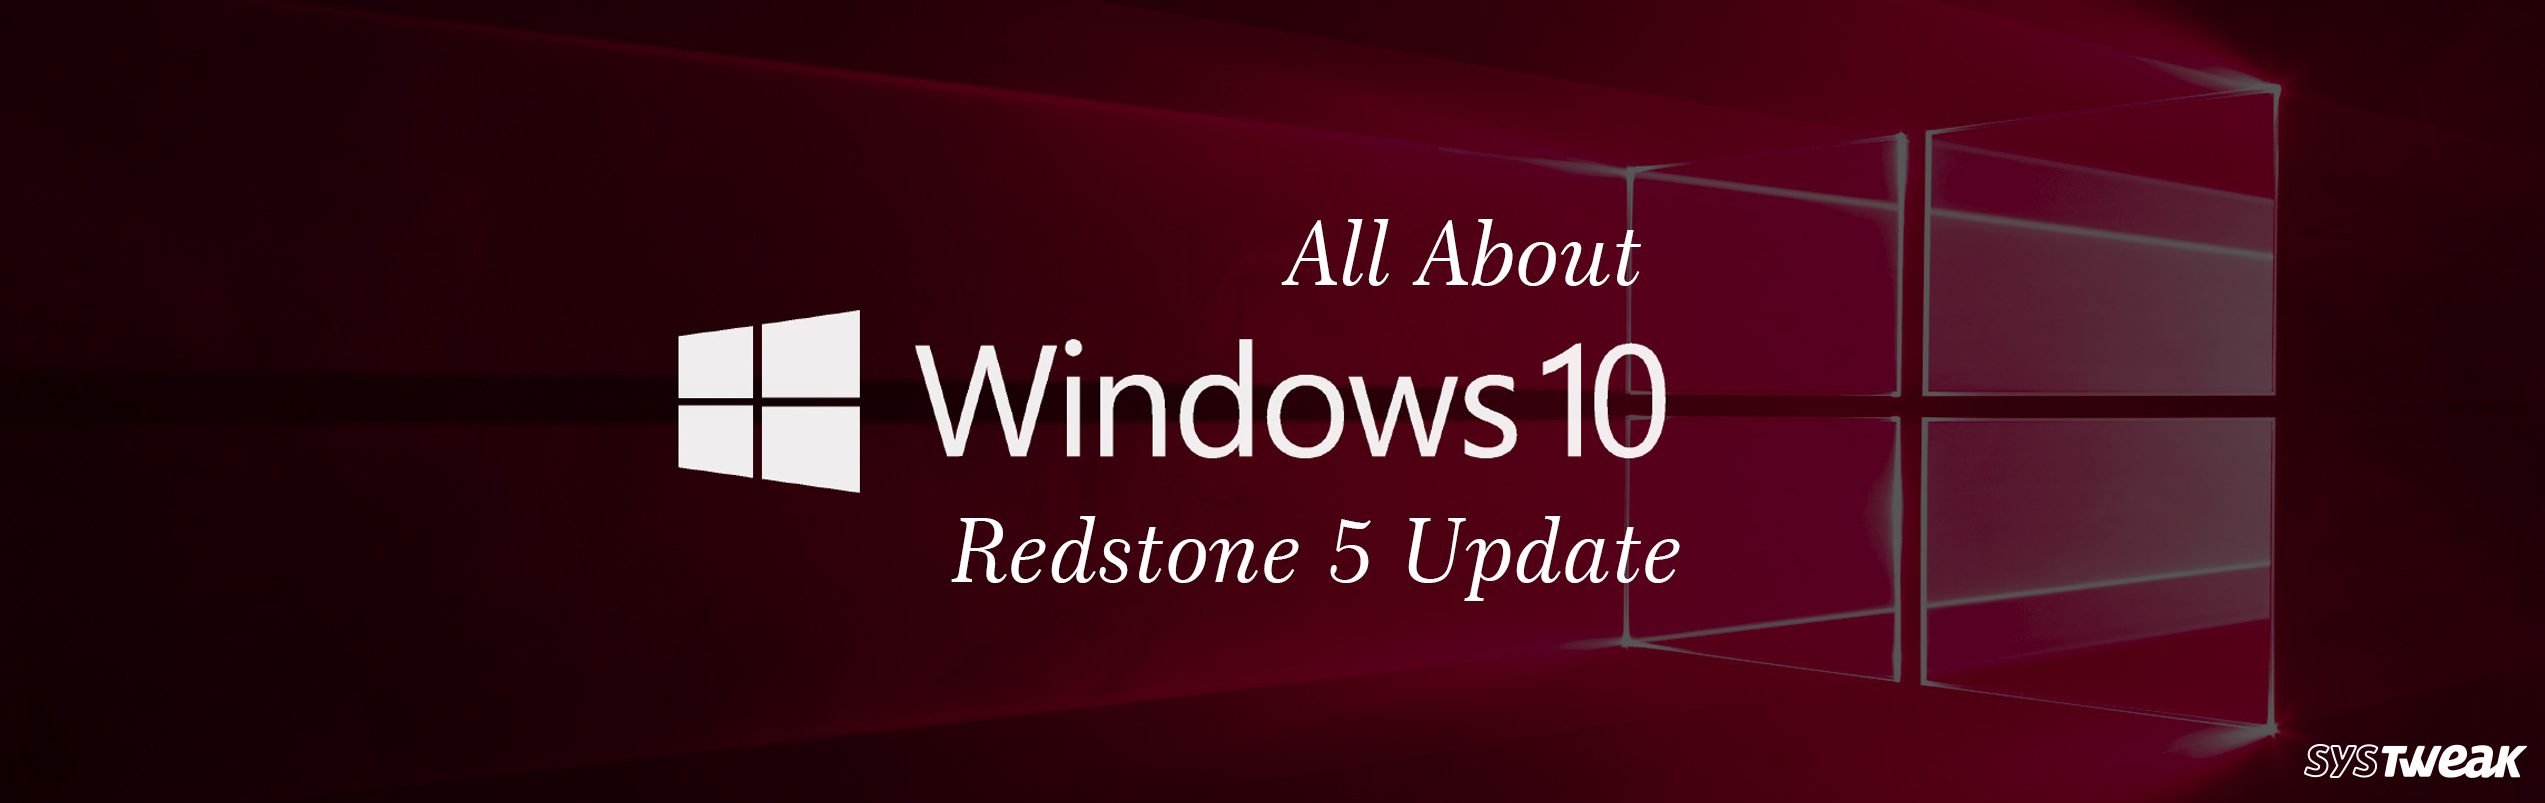 All You Must Know About Windows 10 Preview Build 17677 Redstone 5 (RS5)